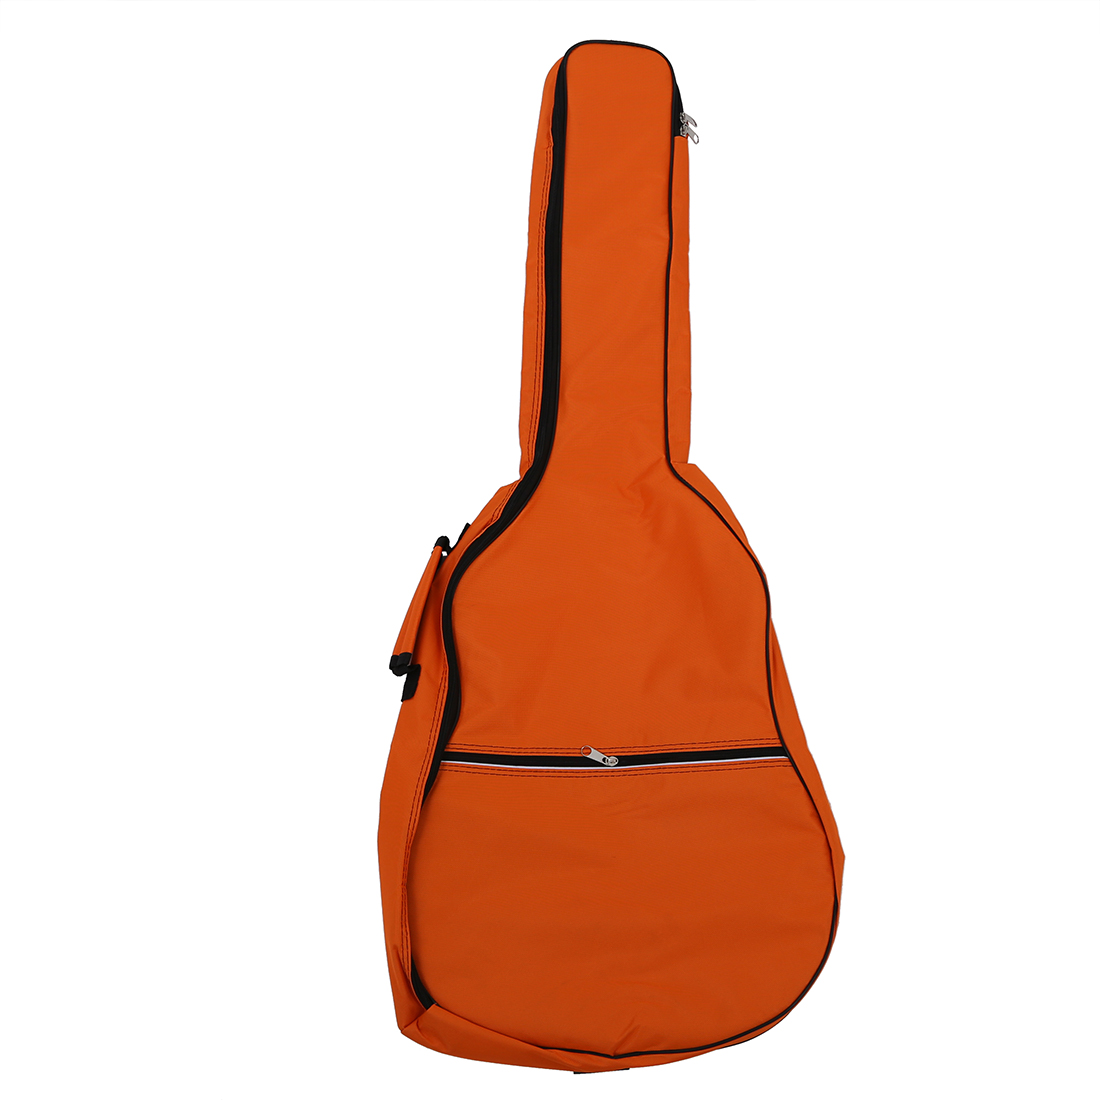 Gig Bag Case Soft Padded Straps for Folk Acoustic Guitar 39 40 41 Inch Orange 40 41 soft acoustic guitar bass case bag cc apb bag acoustic guitar padded gig bag with double padded straps and backpack